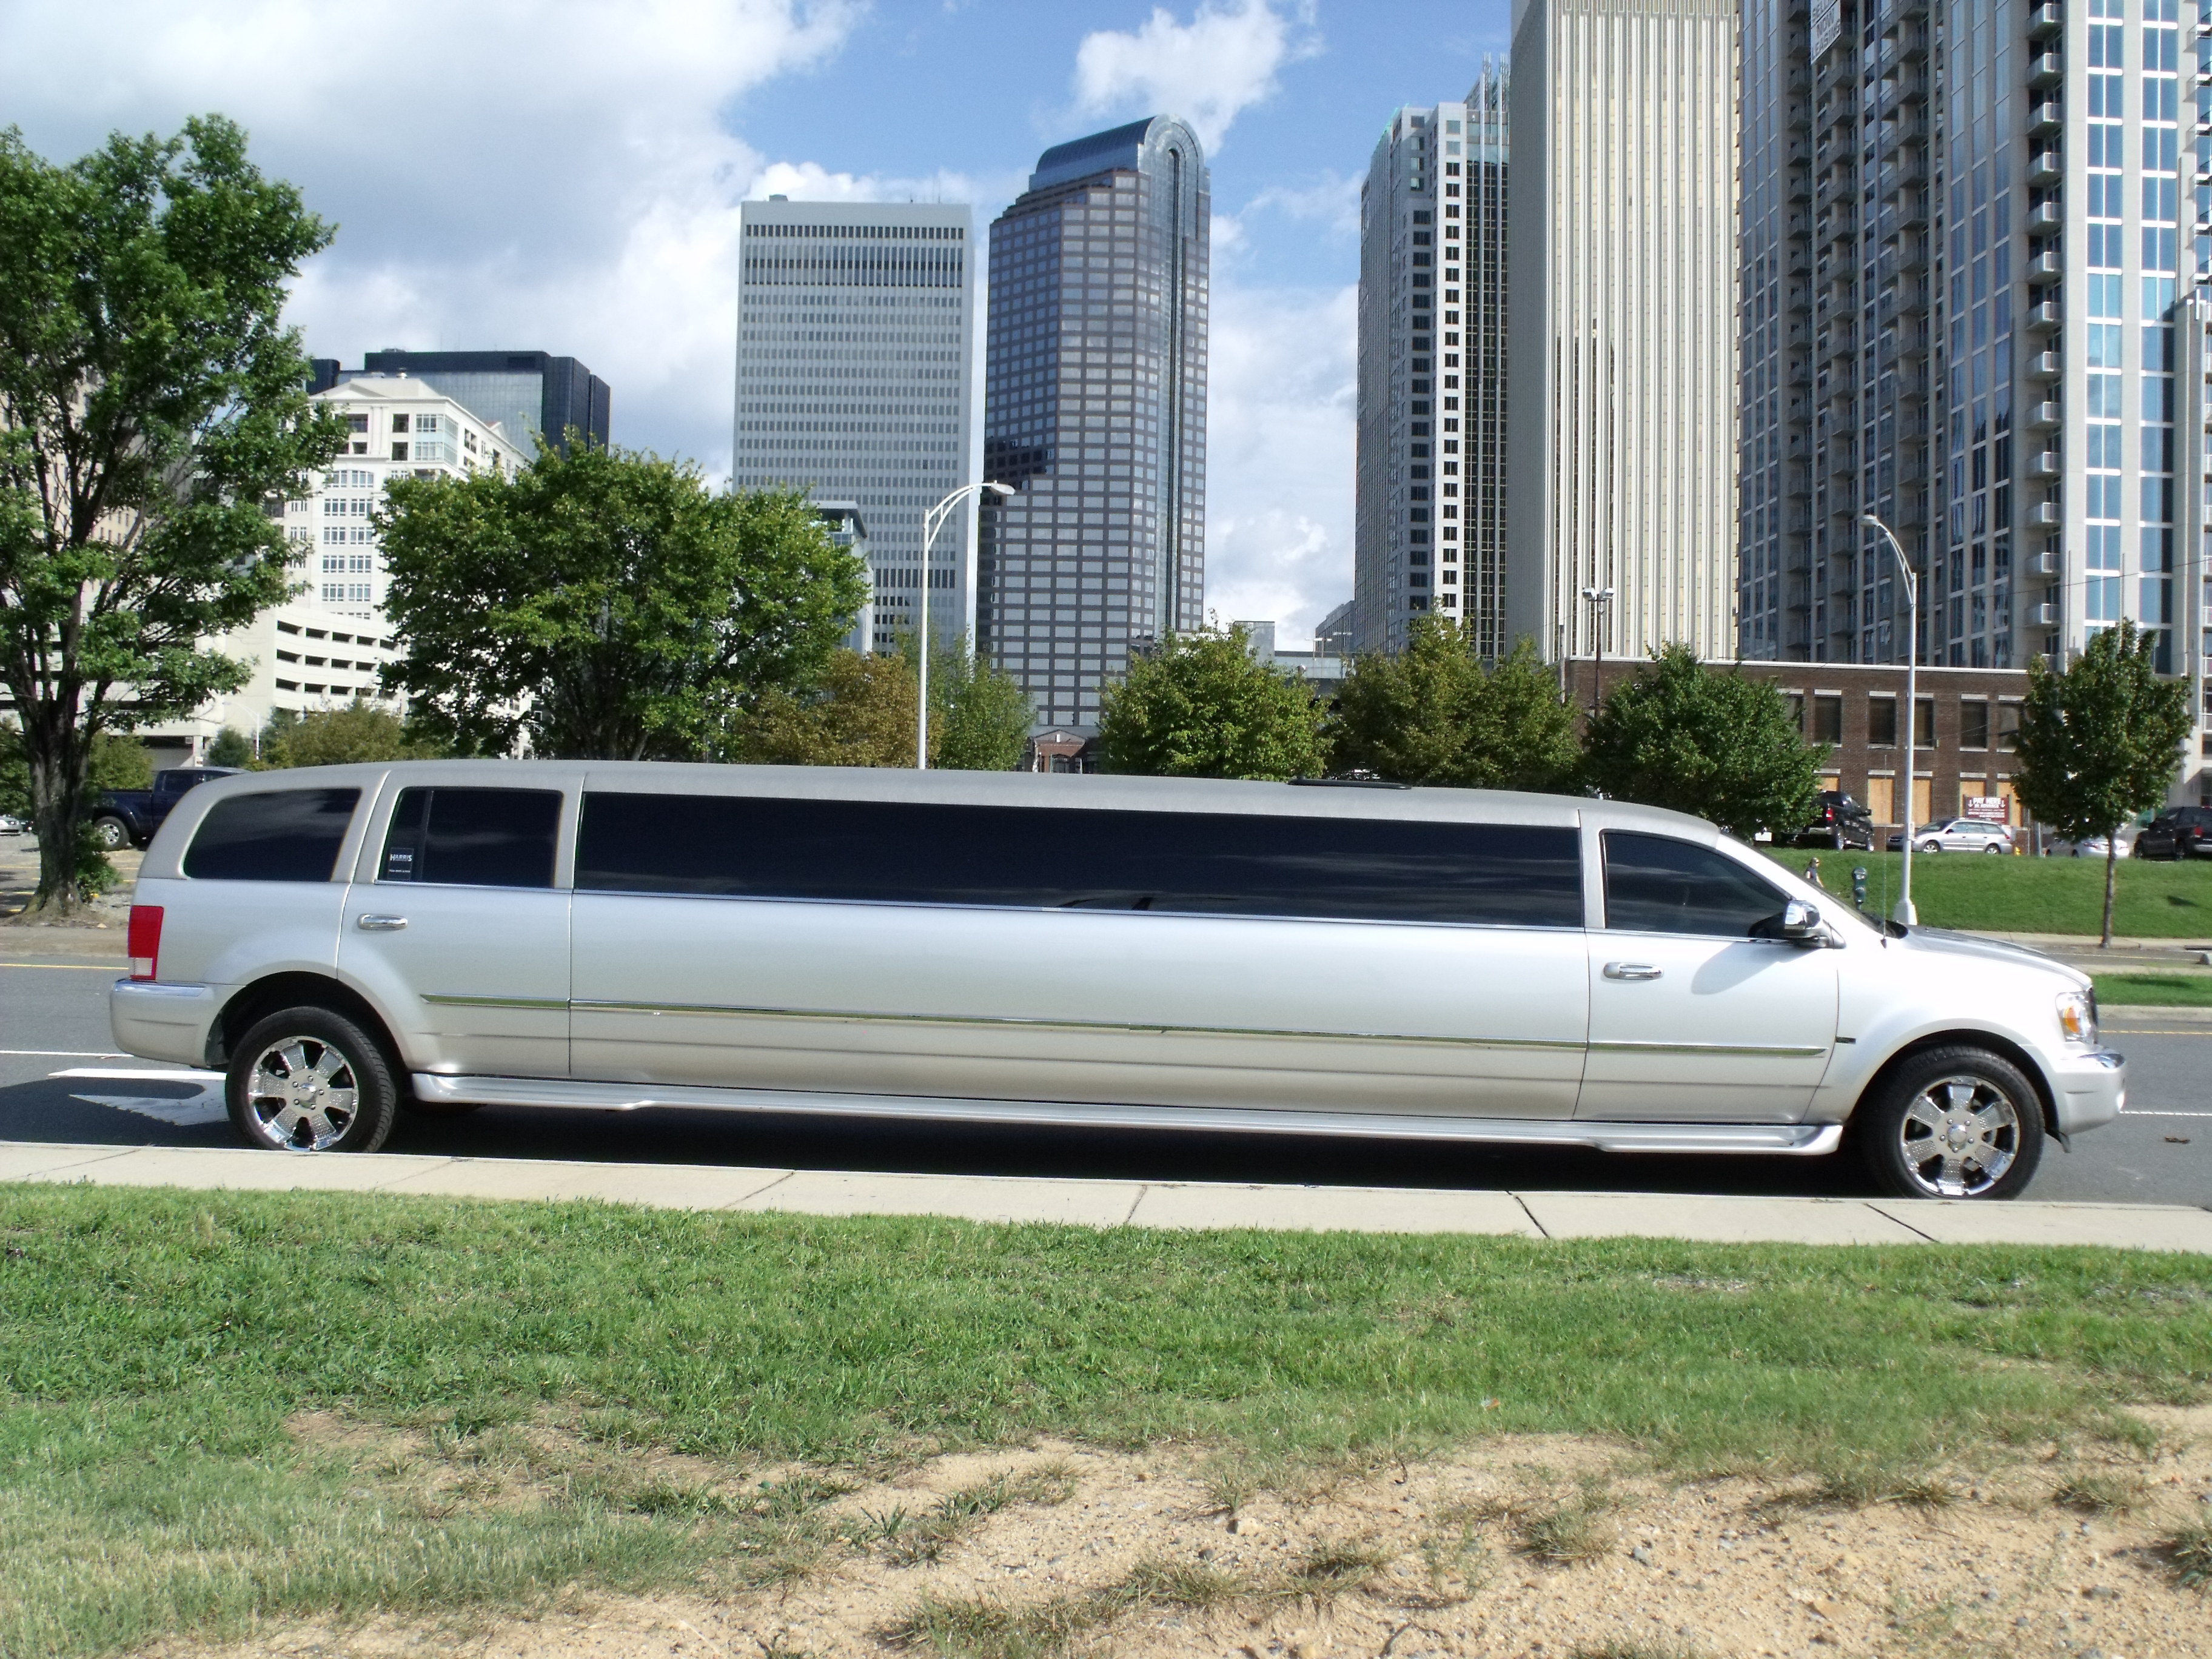 Limousine, Limo, Limos, Super, Charlotte, Stretch, Suv, Harris limo